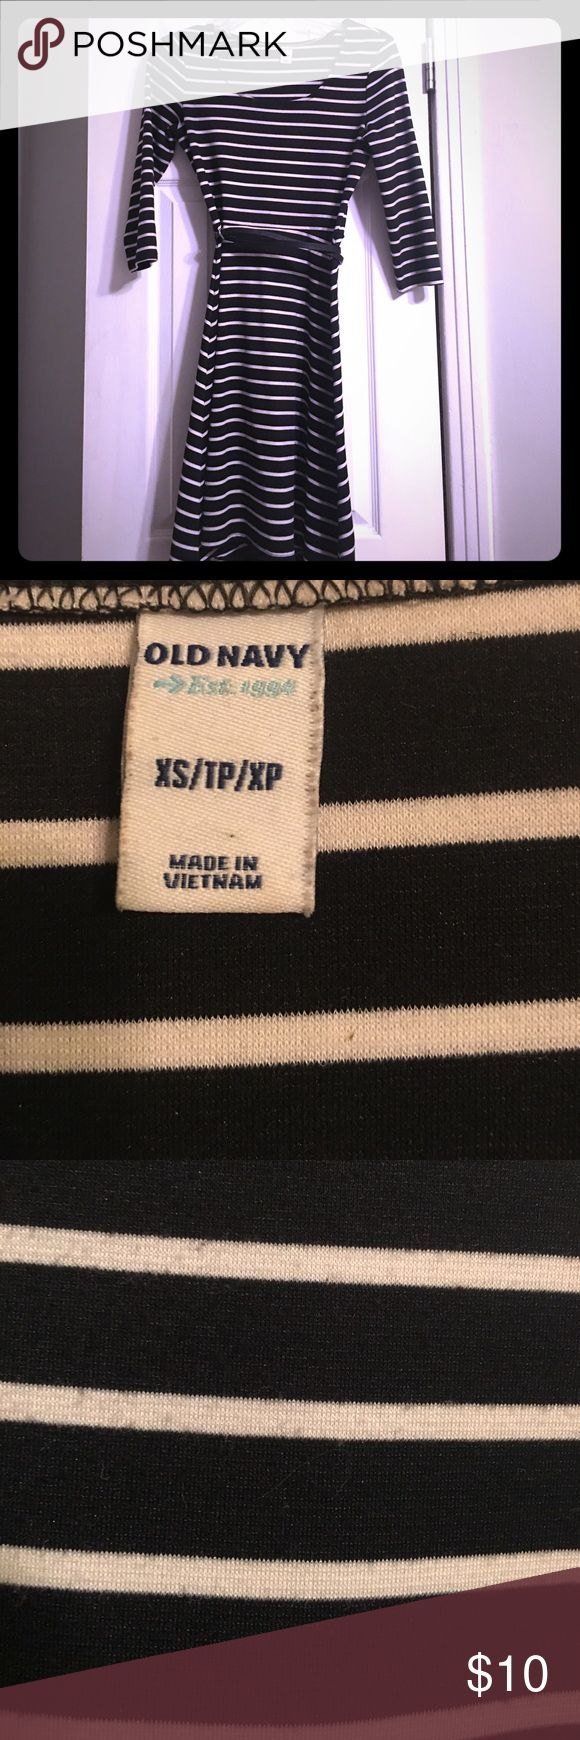 Old Navy striped dress Super flattering dress, fitted at waist. Purchased at Old Navy and in great condition. Size XS and includes belt. Old Navy Dresses